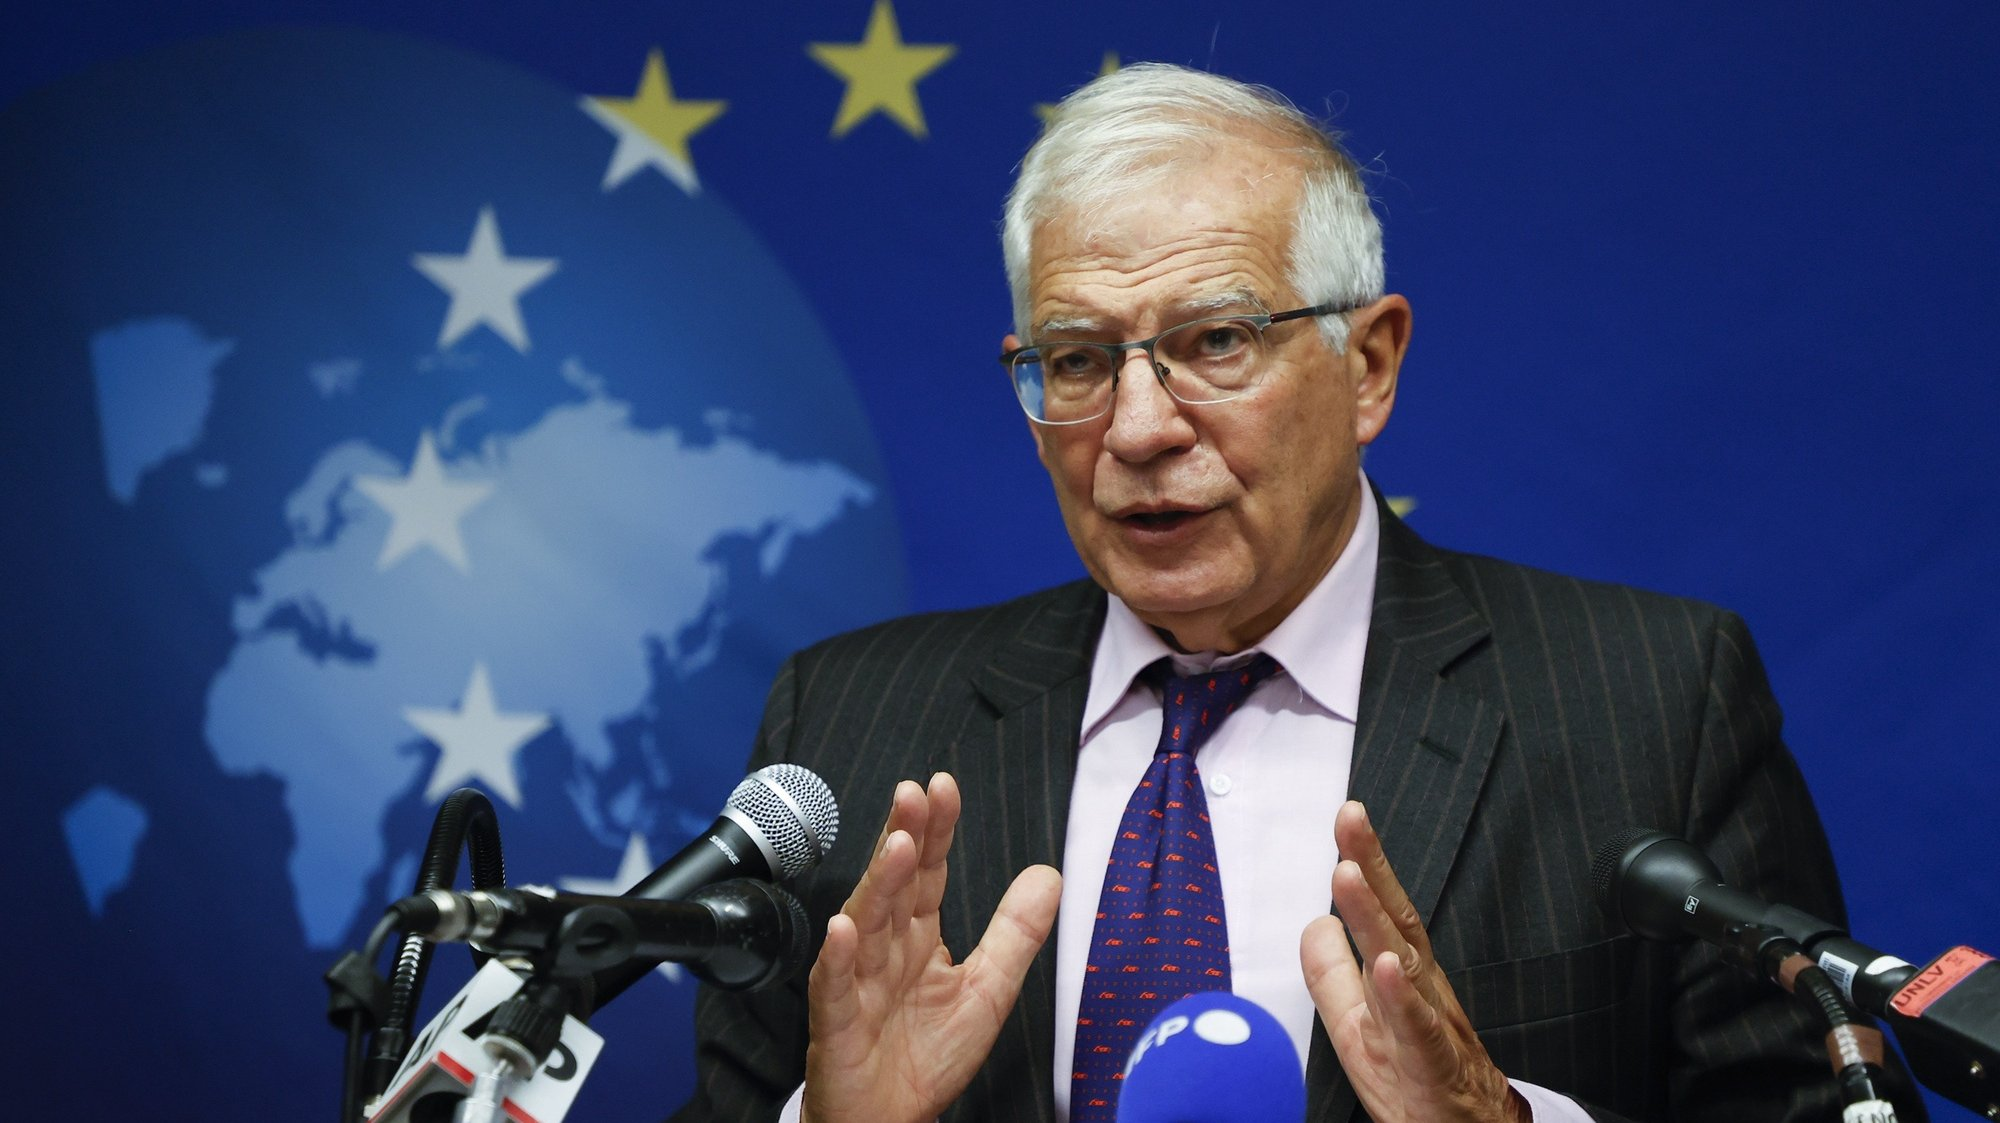 epa09478588 The High Representative of the European Union for Foreign Affairs and Security Policy, and Vice President of the European Union Josep Borrell speaks during a press conference, following the EU Foreign Ministers meeting on Afghanistan, in New York, New York, USA, 20 September 2021.  EPA/JASON SZENES